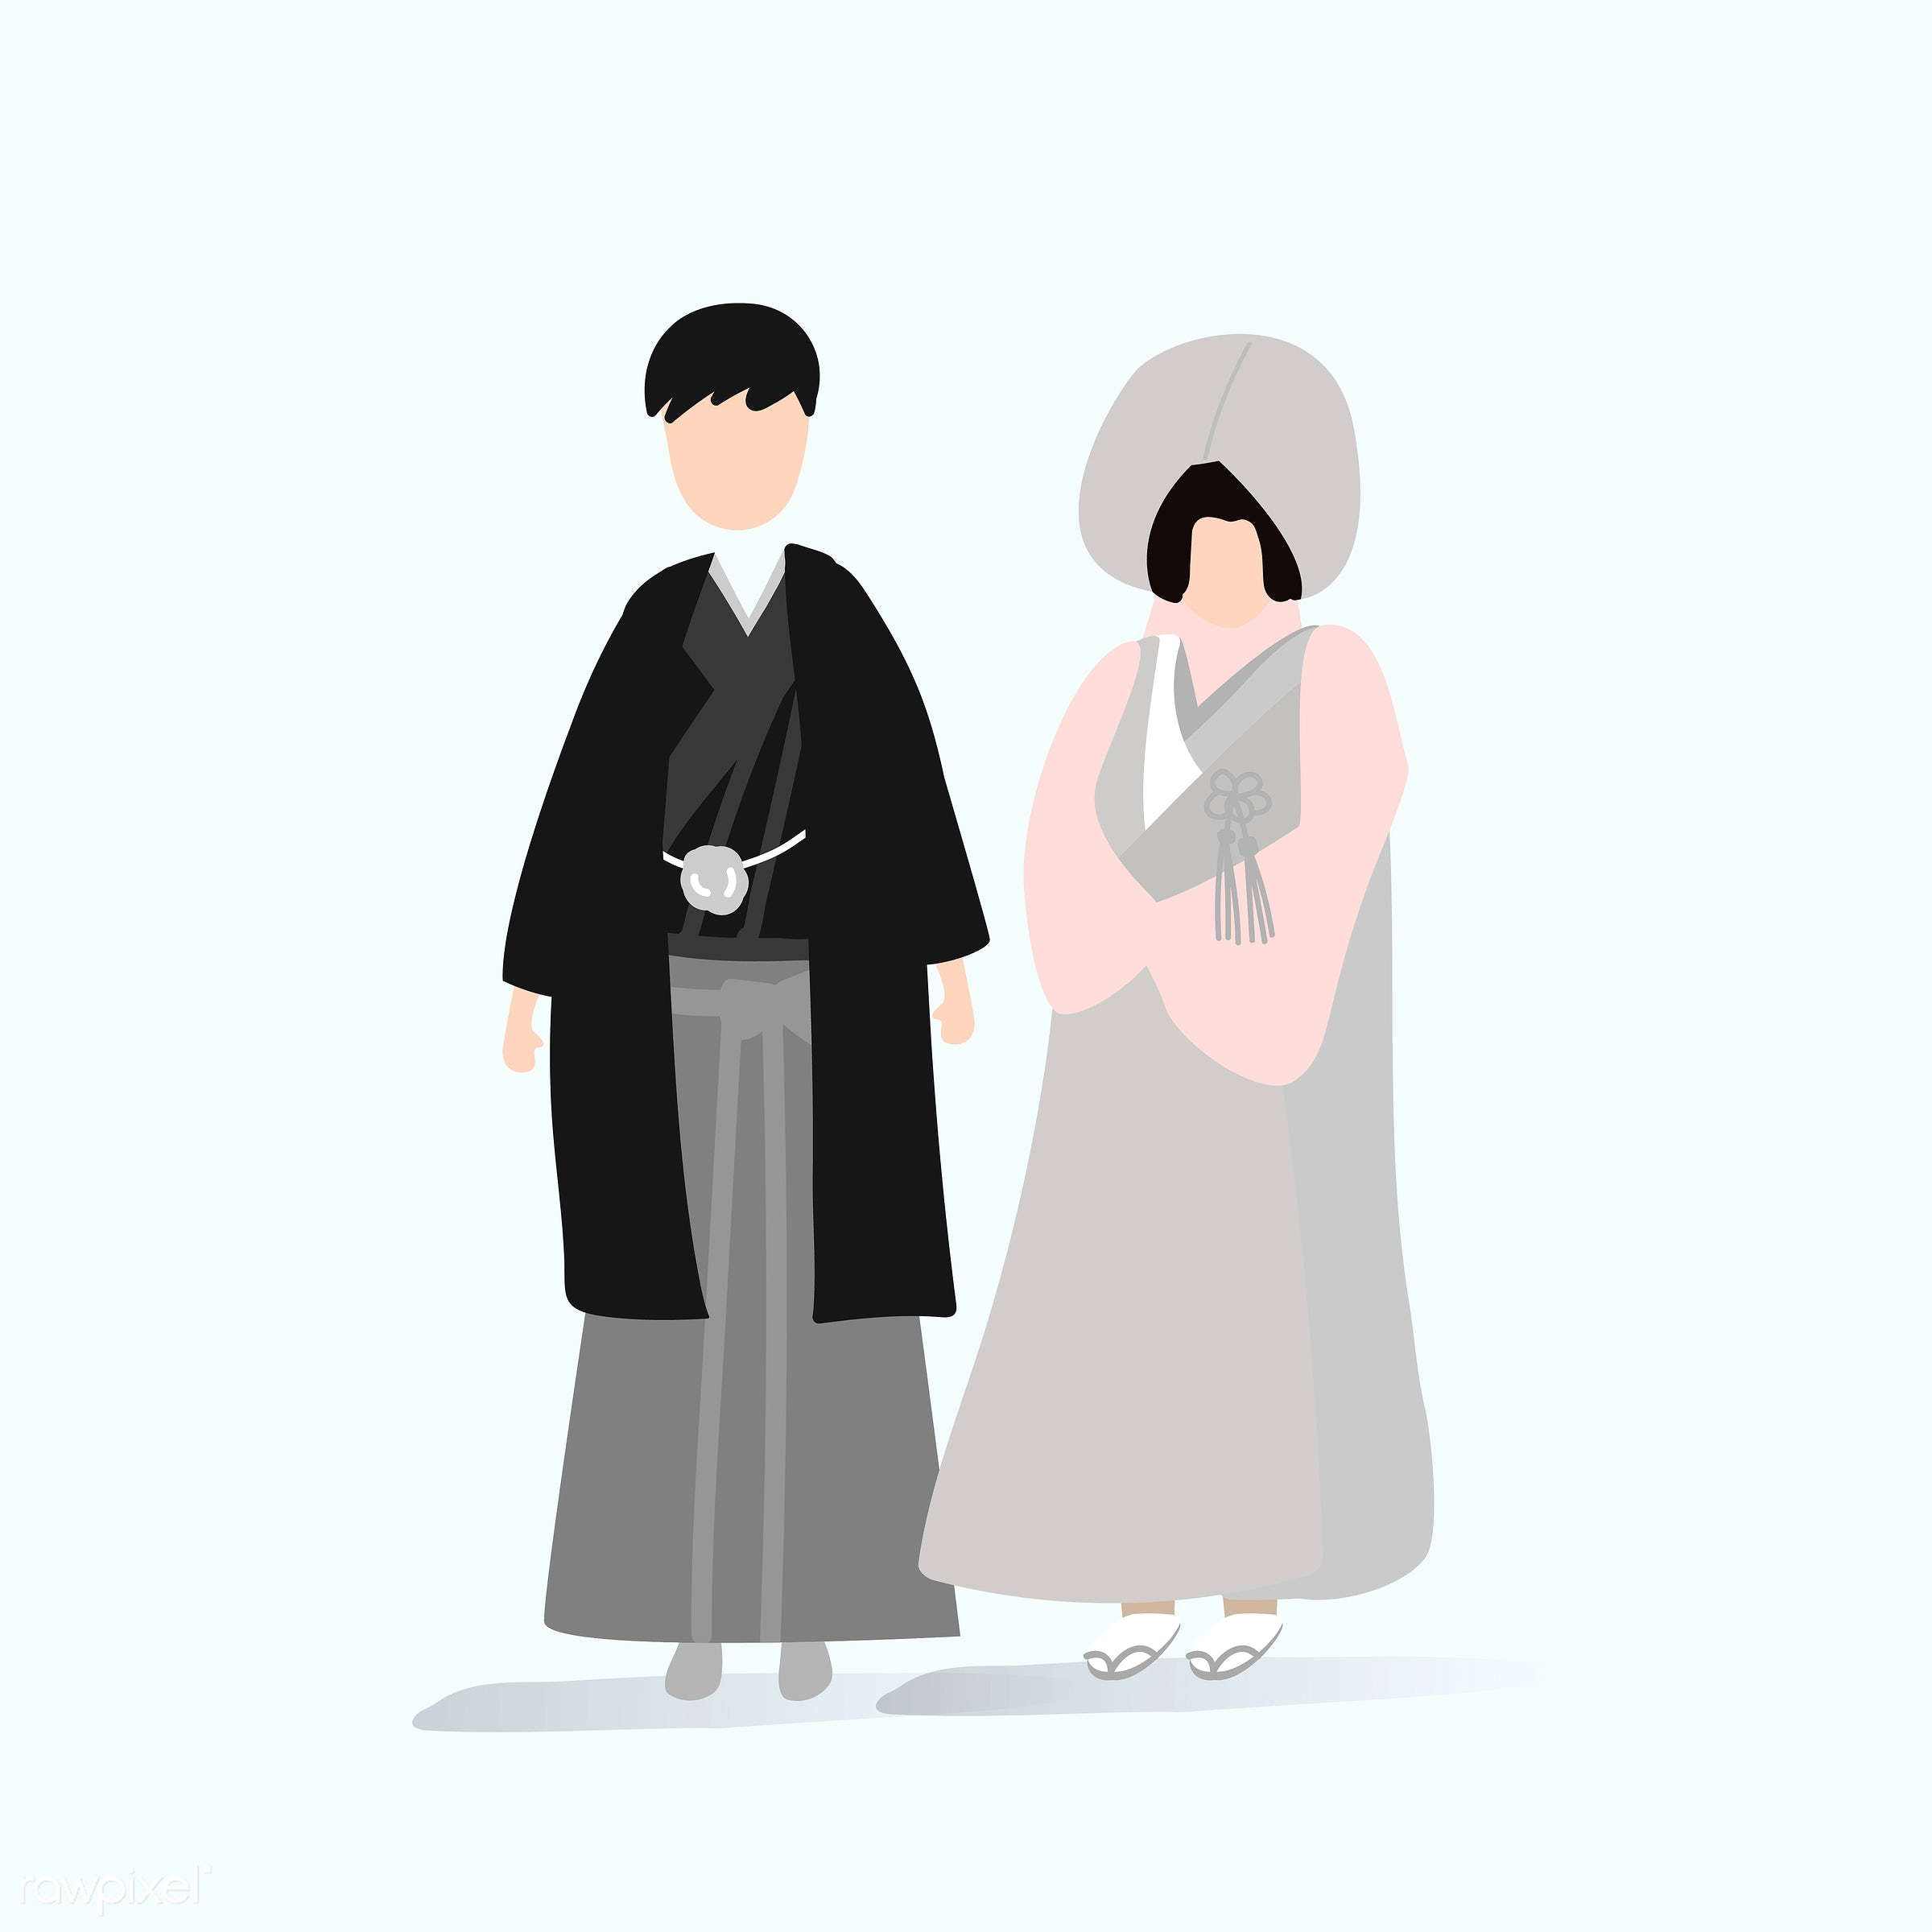 Japanese traditional wedding dress vector - japan, costume, country, couple, female, graphic, illustration, japanese, love,...